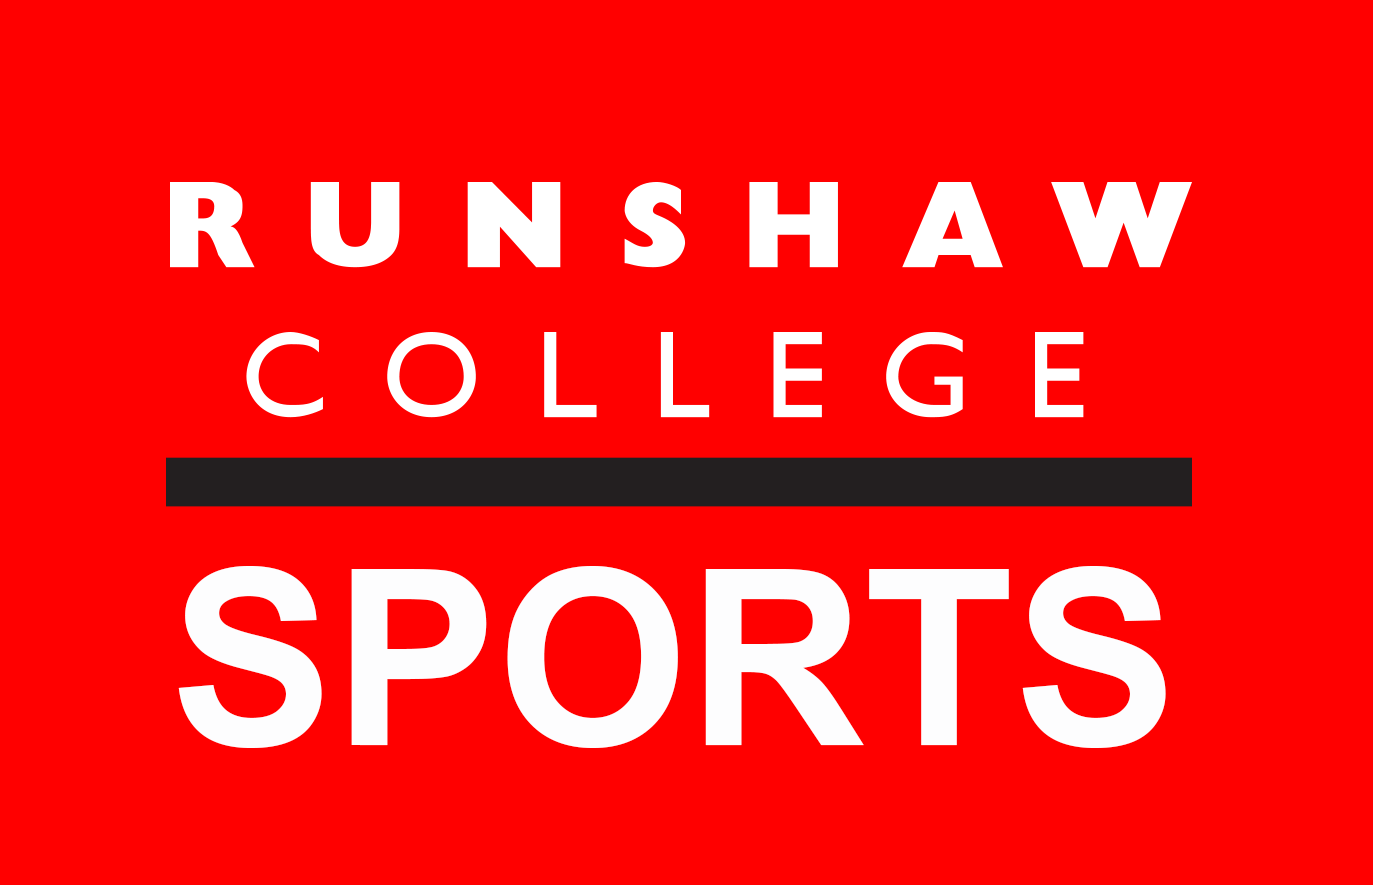 runshaw-college-sports.png